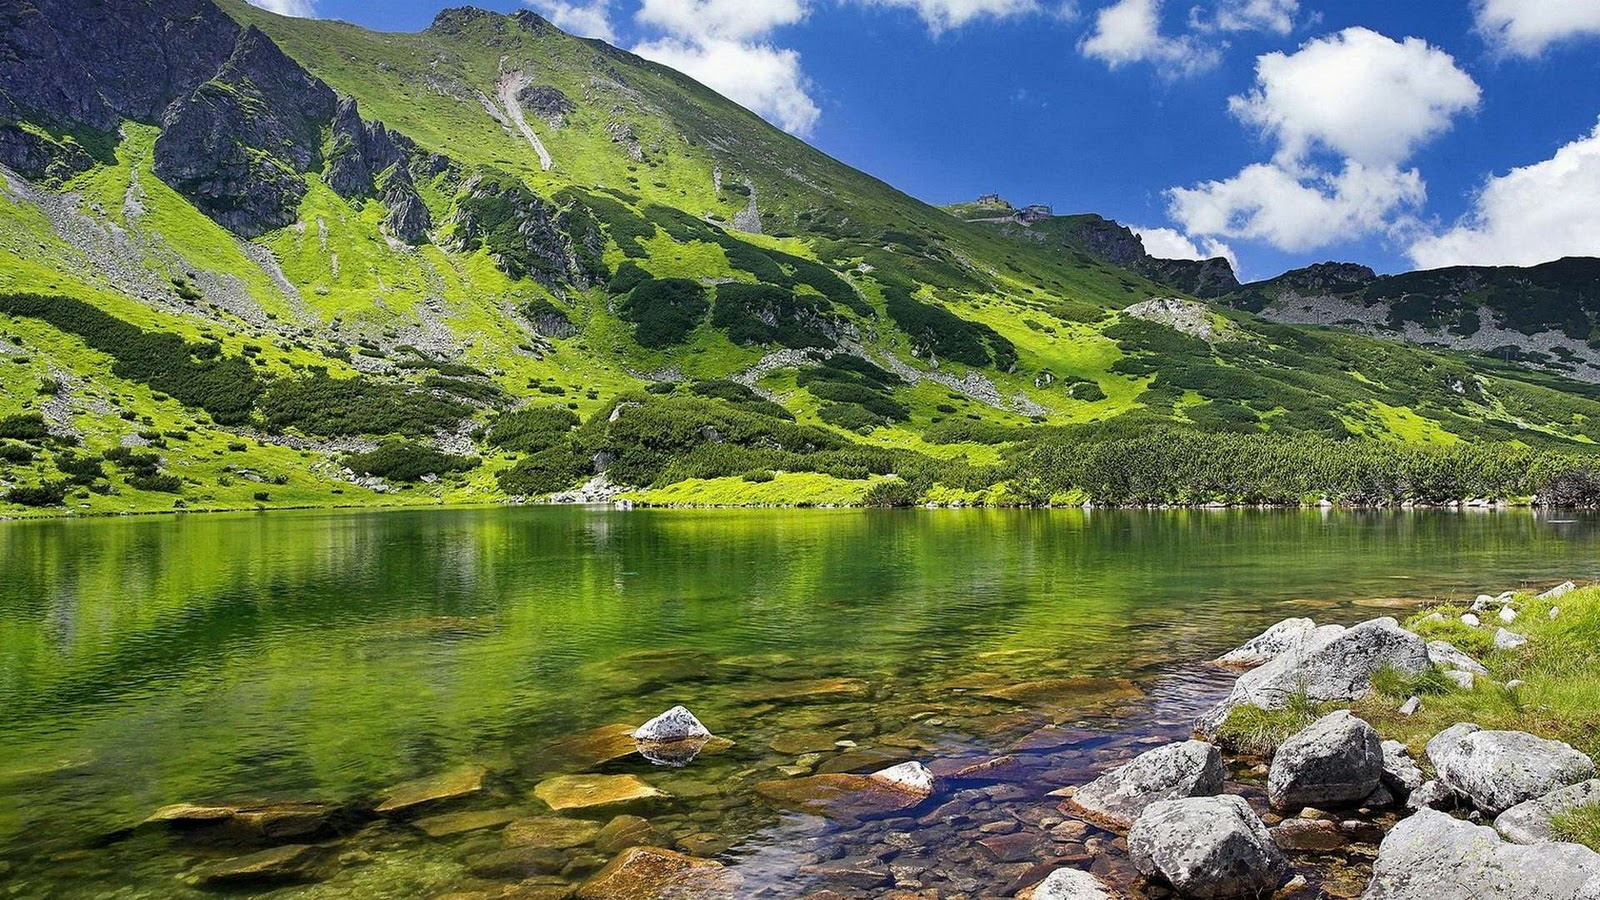 lake under green mountain wallpaper background